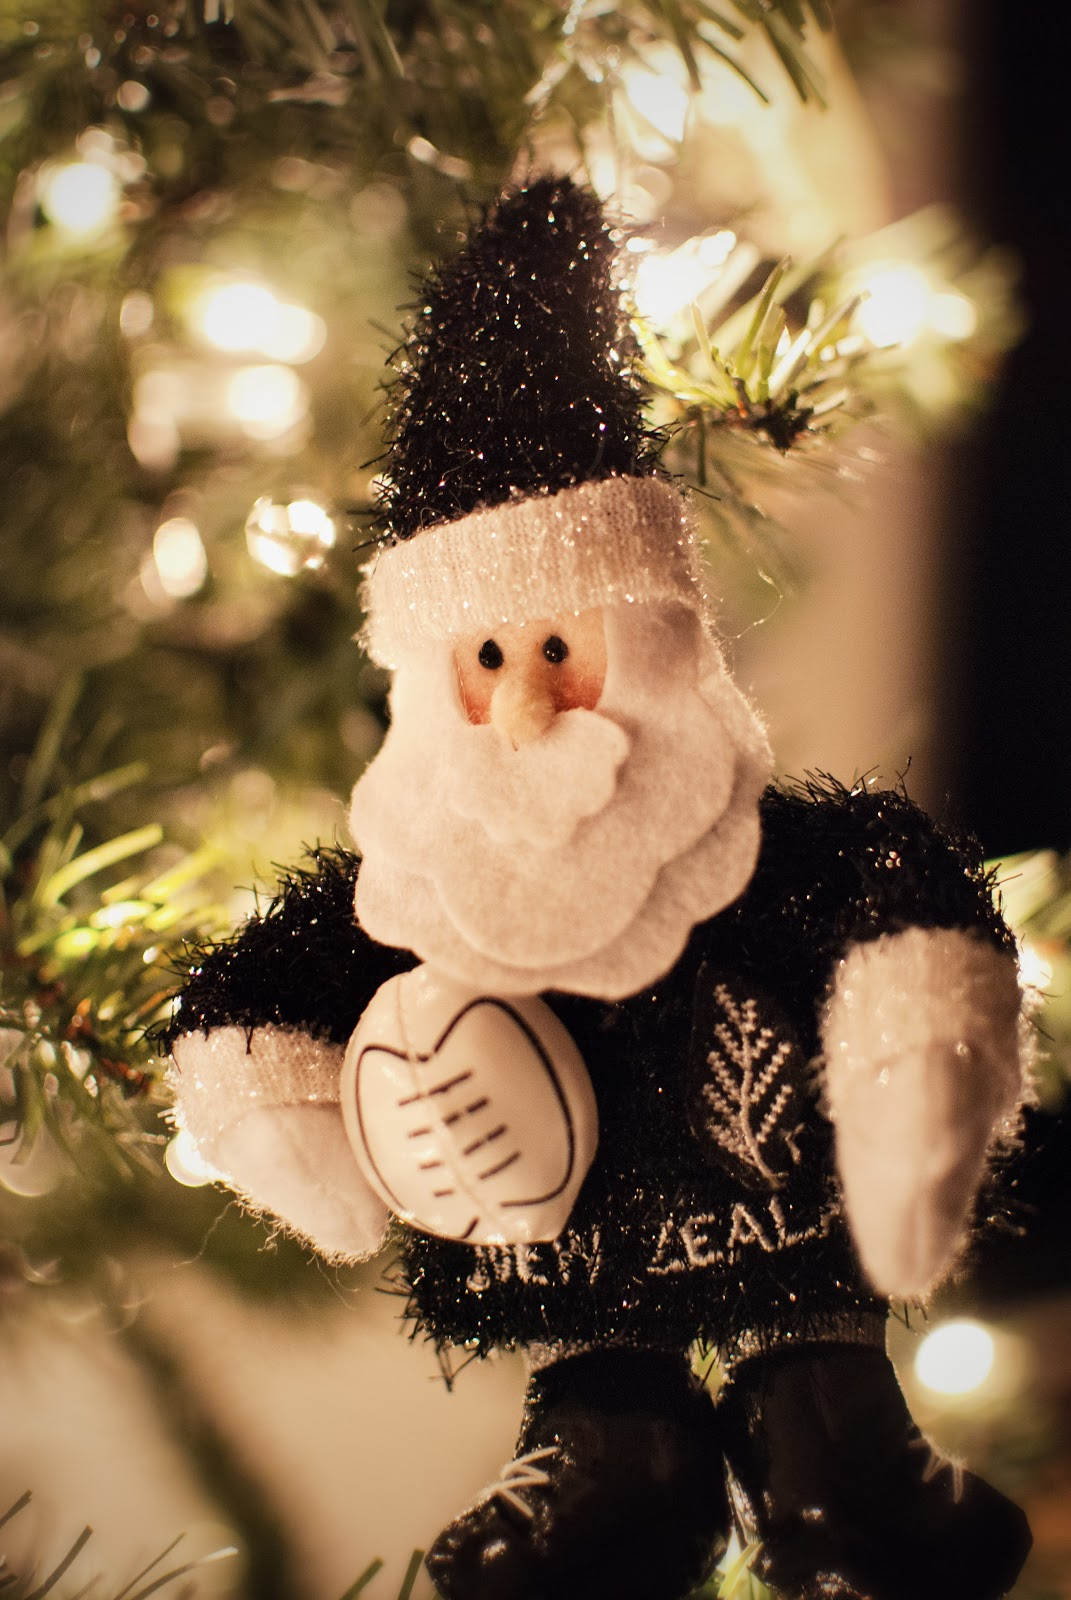 This Year We Add All Black Santa To Our Christmas Tree The All Blacks Is  The National Rugby Team Of New Zealand, And If You Didn't Know, They're  Kind Of A